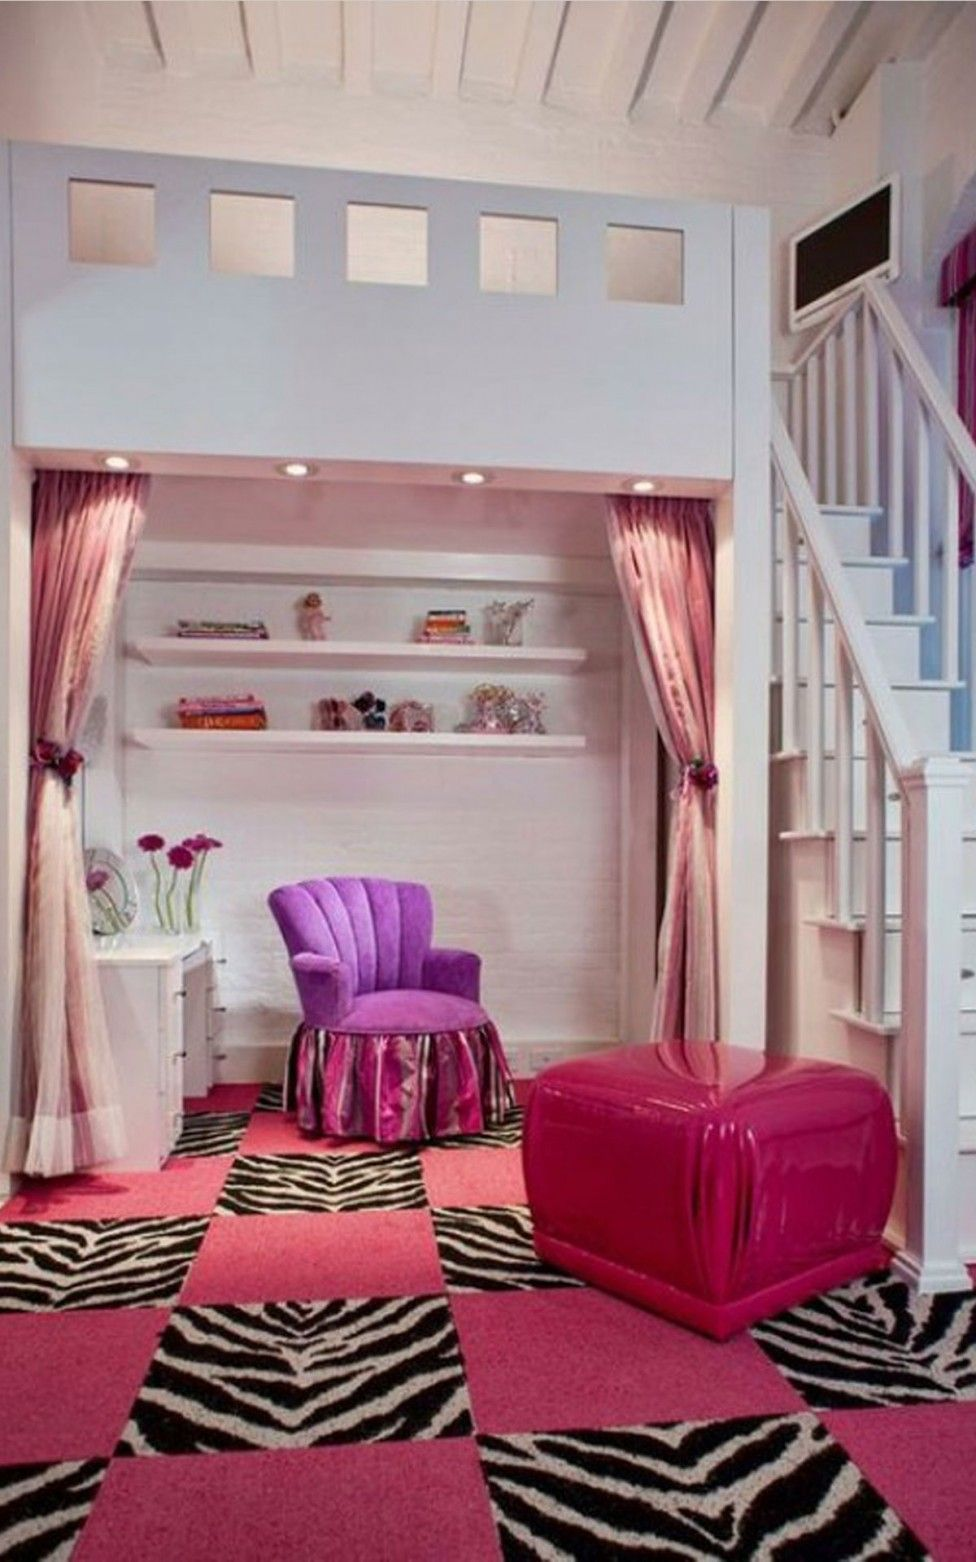 Small room ideas for girls with cute color bedroom 22 for Cute bedroom ideas for teenage girls with small rooms